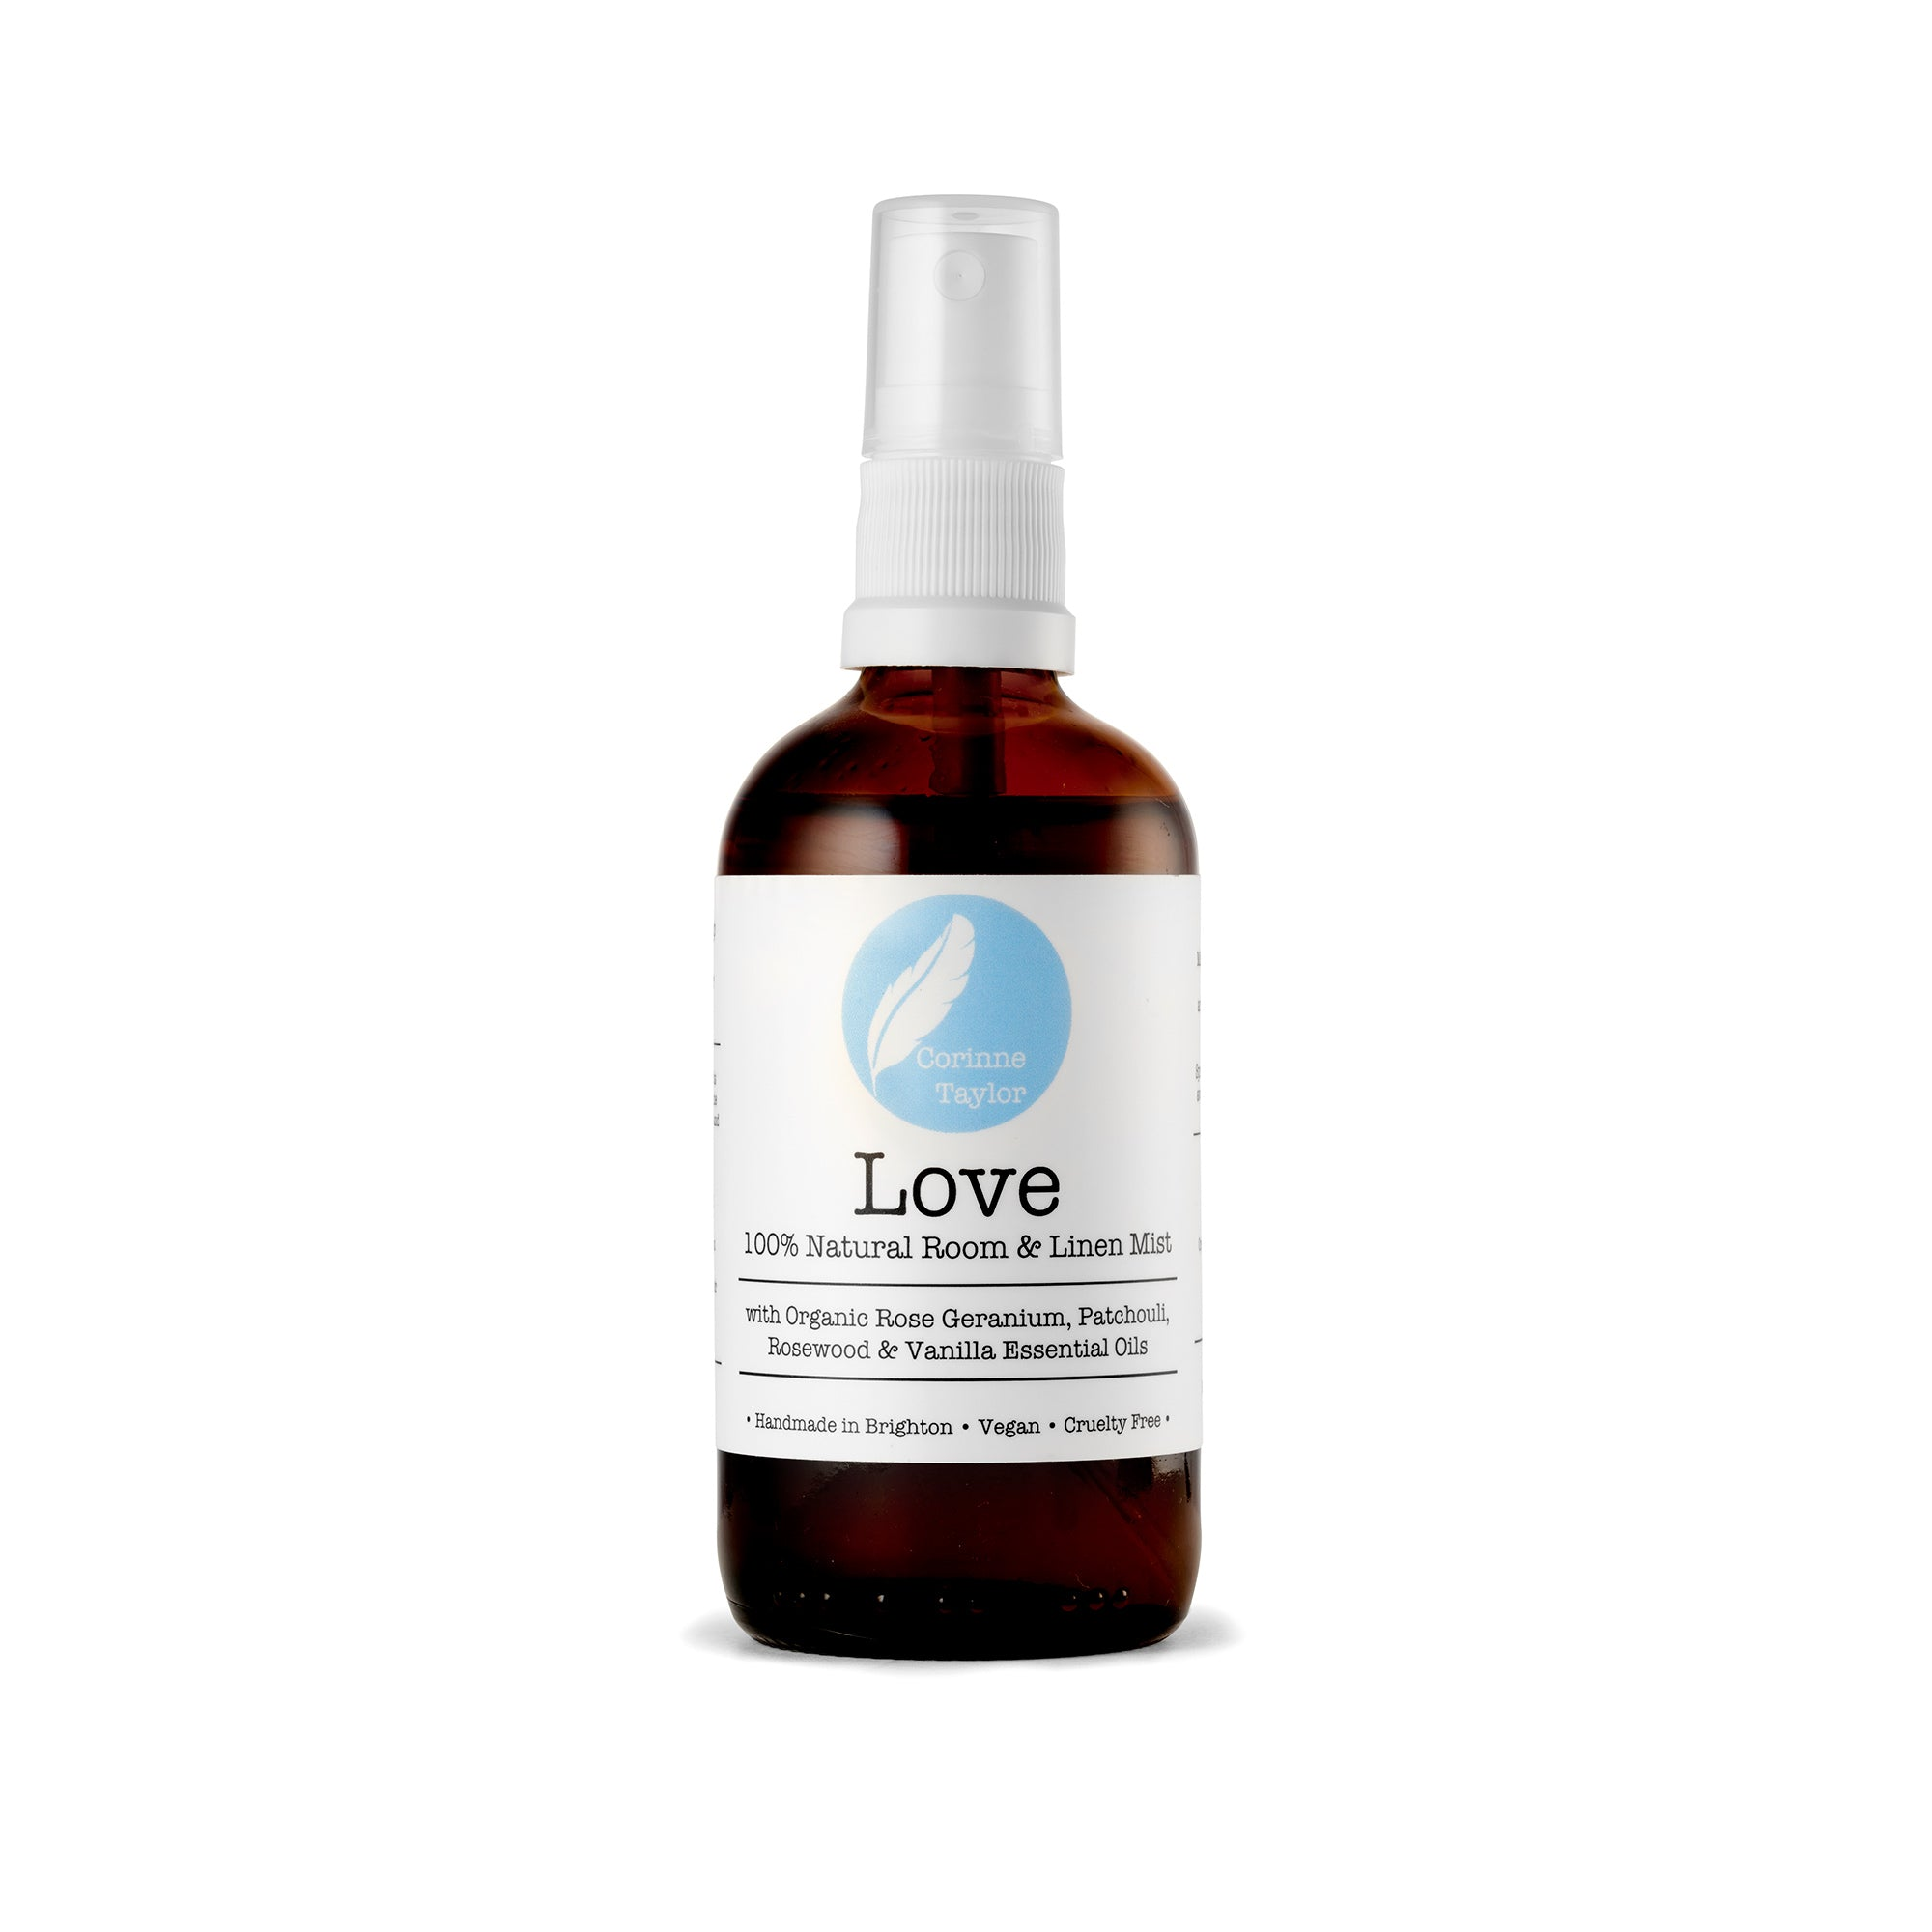 Love Aromatherapy room and linen mist by Corinne Taylor. 100% natural, vegan, plant based, cruelty free. With organic Rose Geranium, Rosewood, Patchouli & Vanilla essential oils.